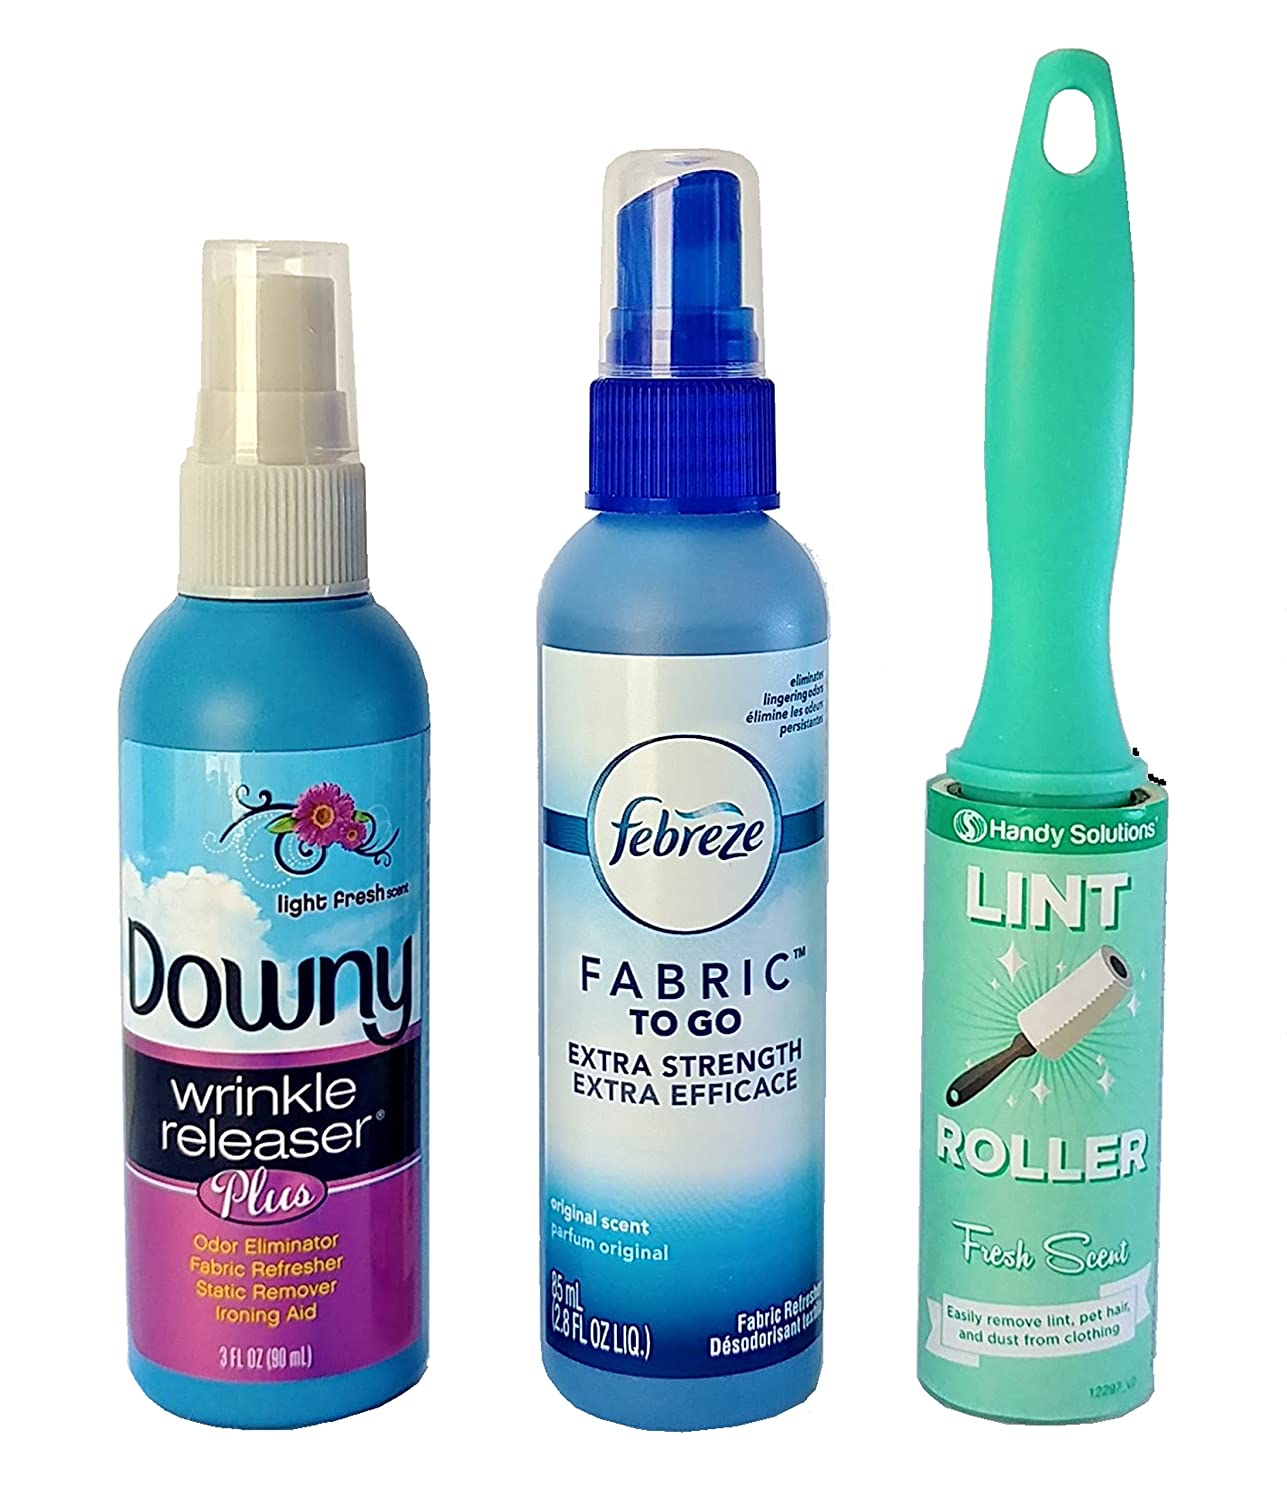 Downy Wrinkle Releaser Bundle with Febreze Fabric Refresher and Lint Remover- 3 Items